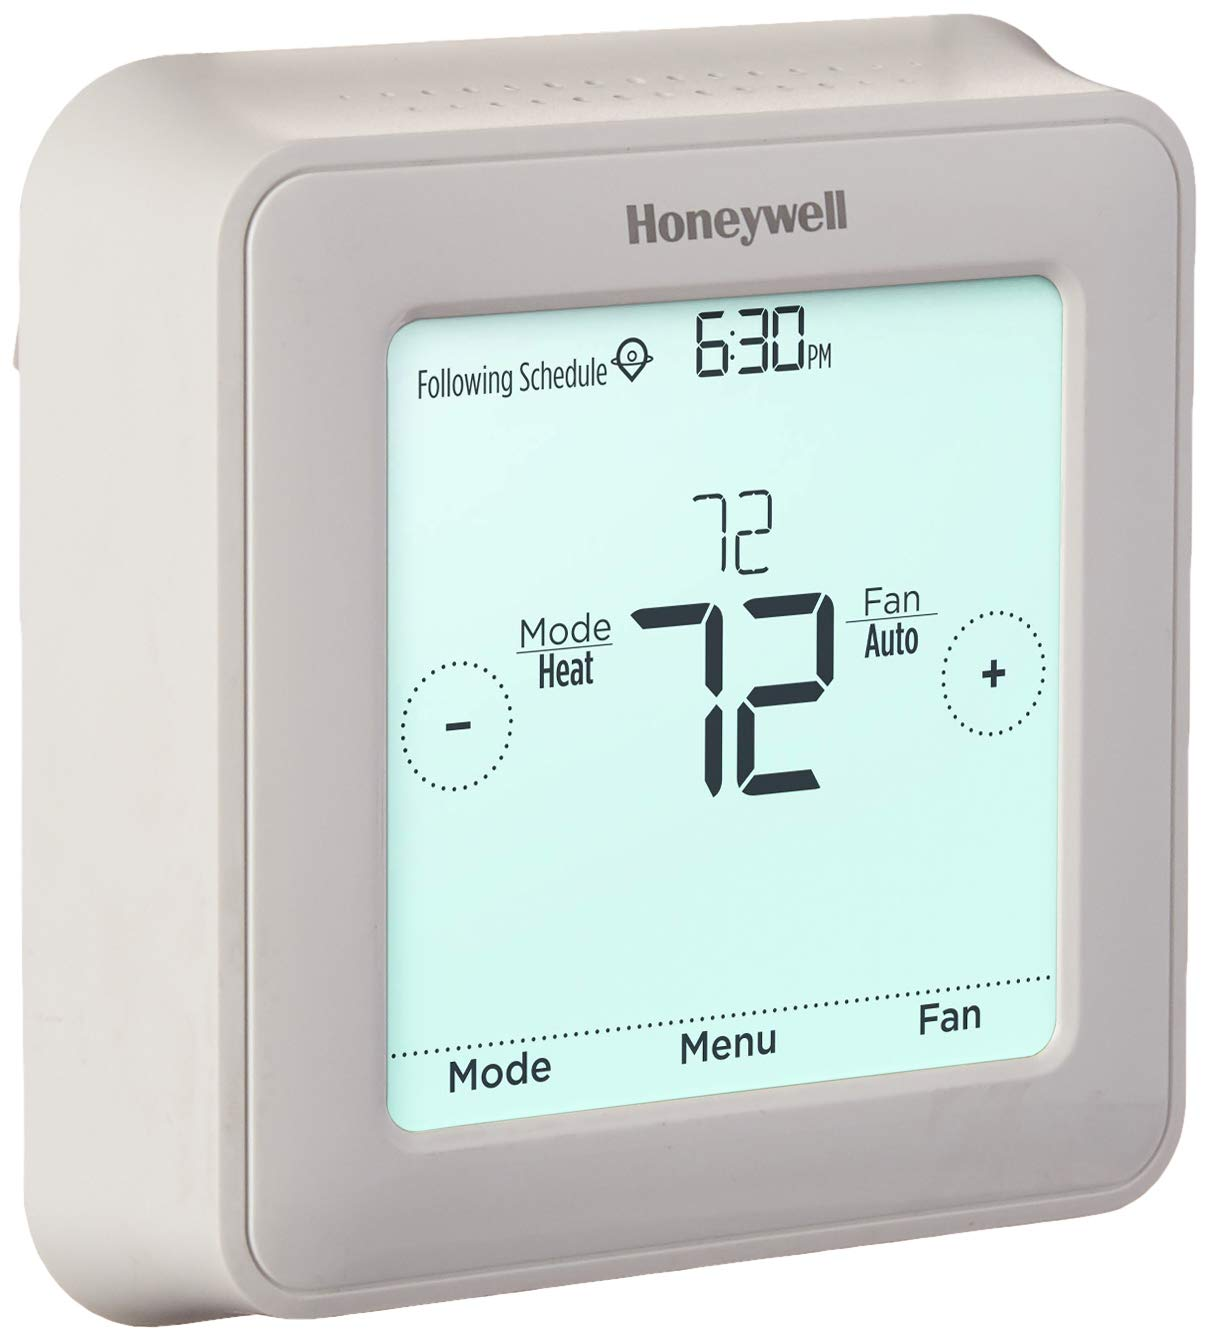 Honeywell RTH8560D1002/E T5 Touchscreen Thermostat, White by Honeywell